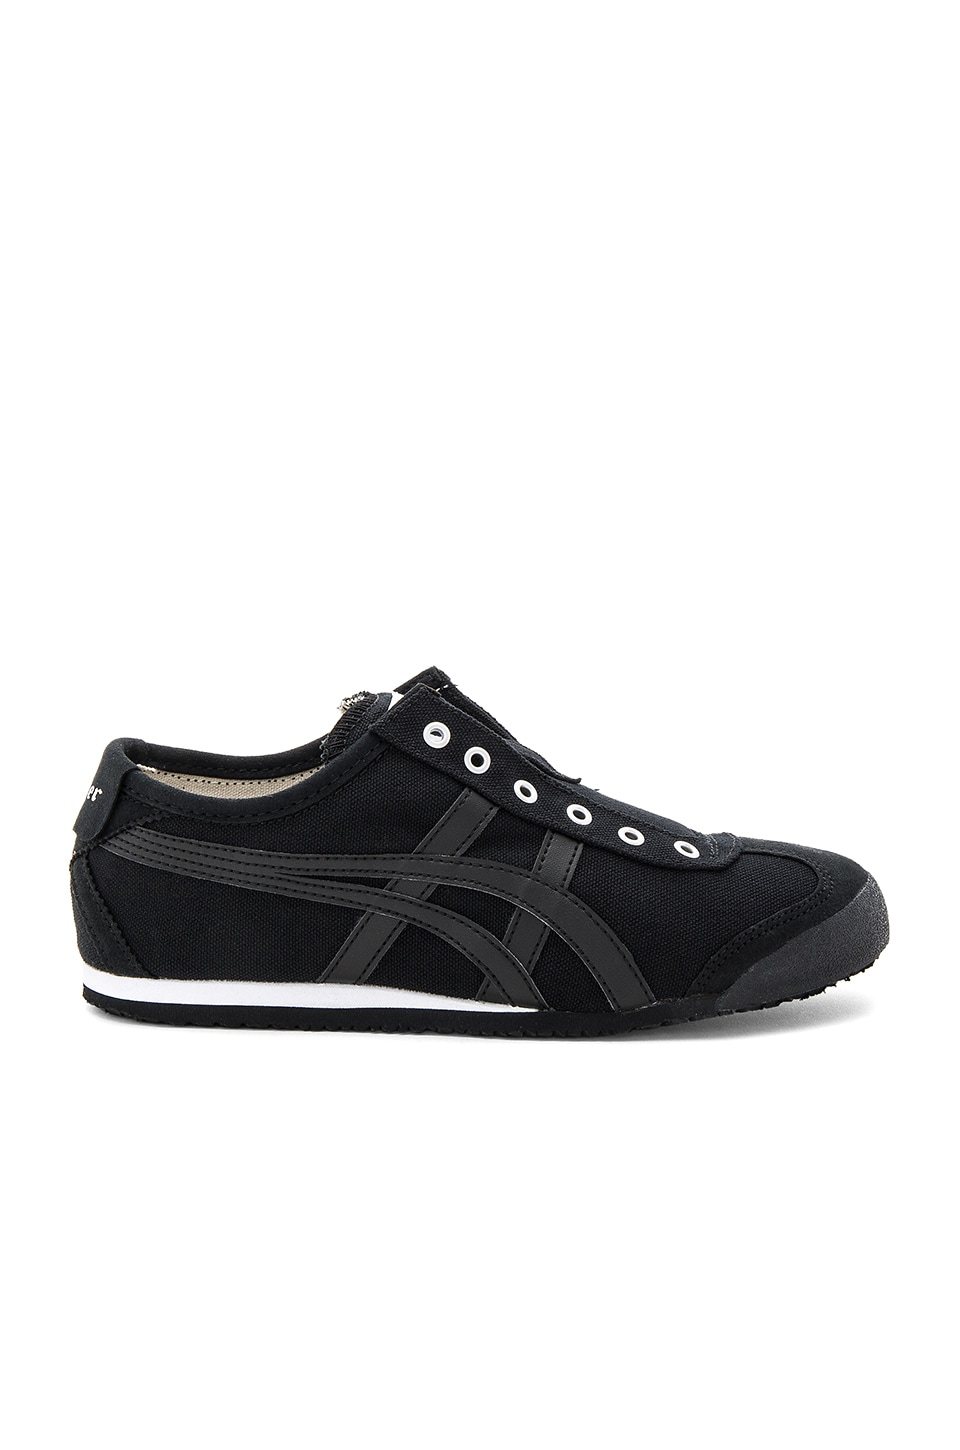 onitsuka tiger mexico 66 slip on black and white letra jersey